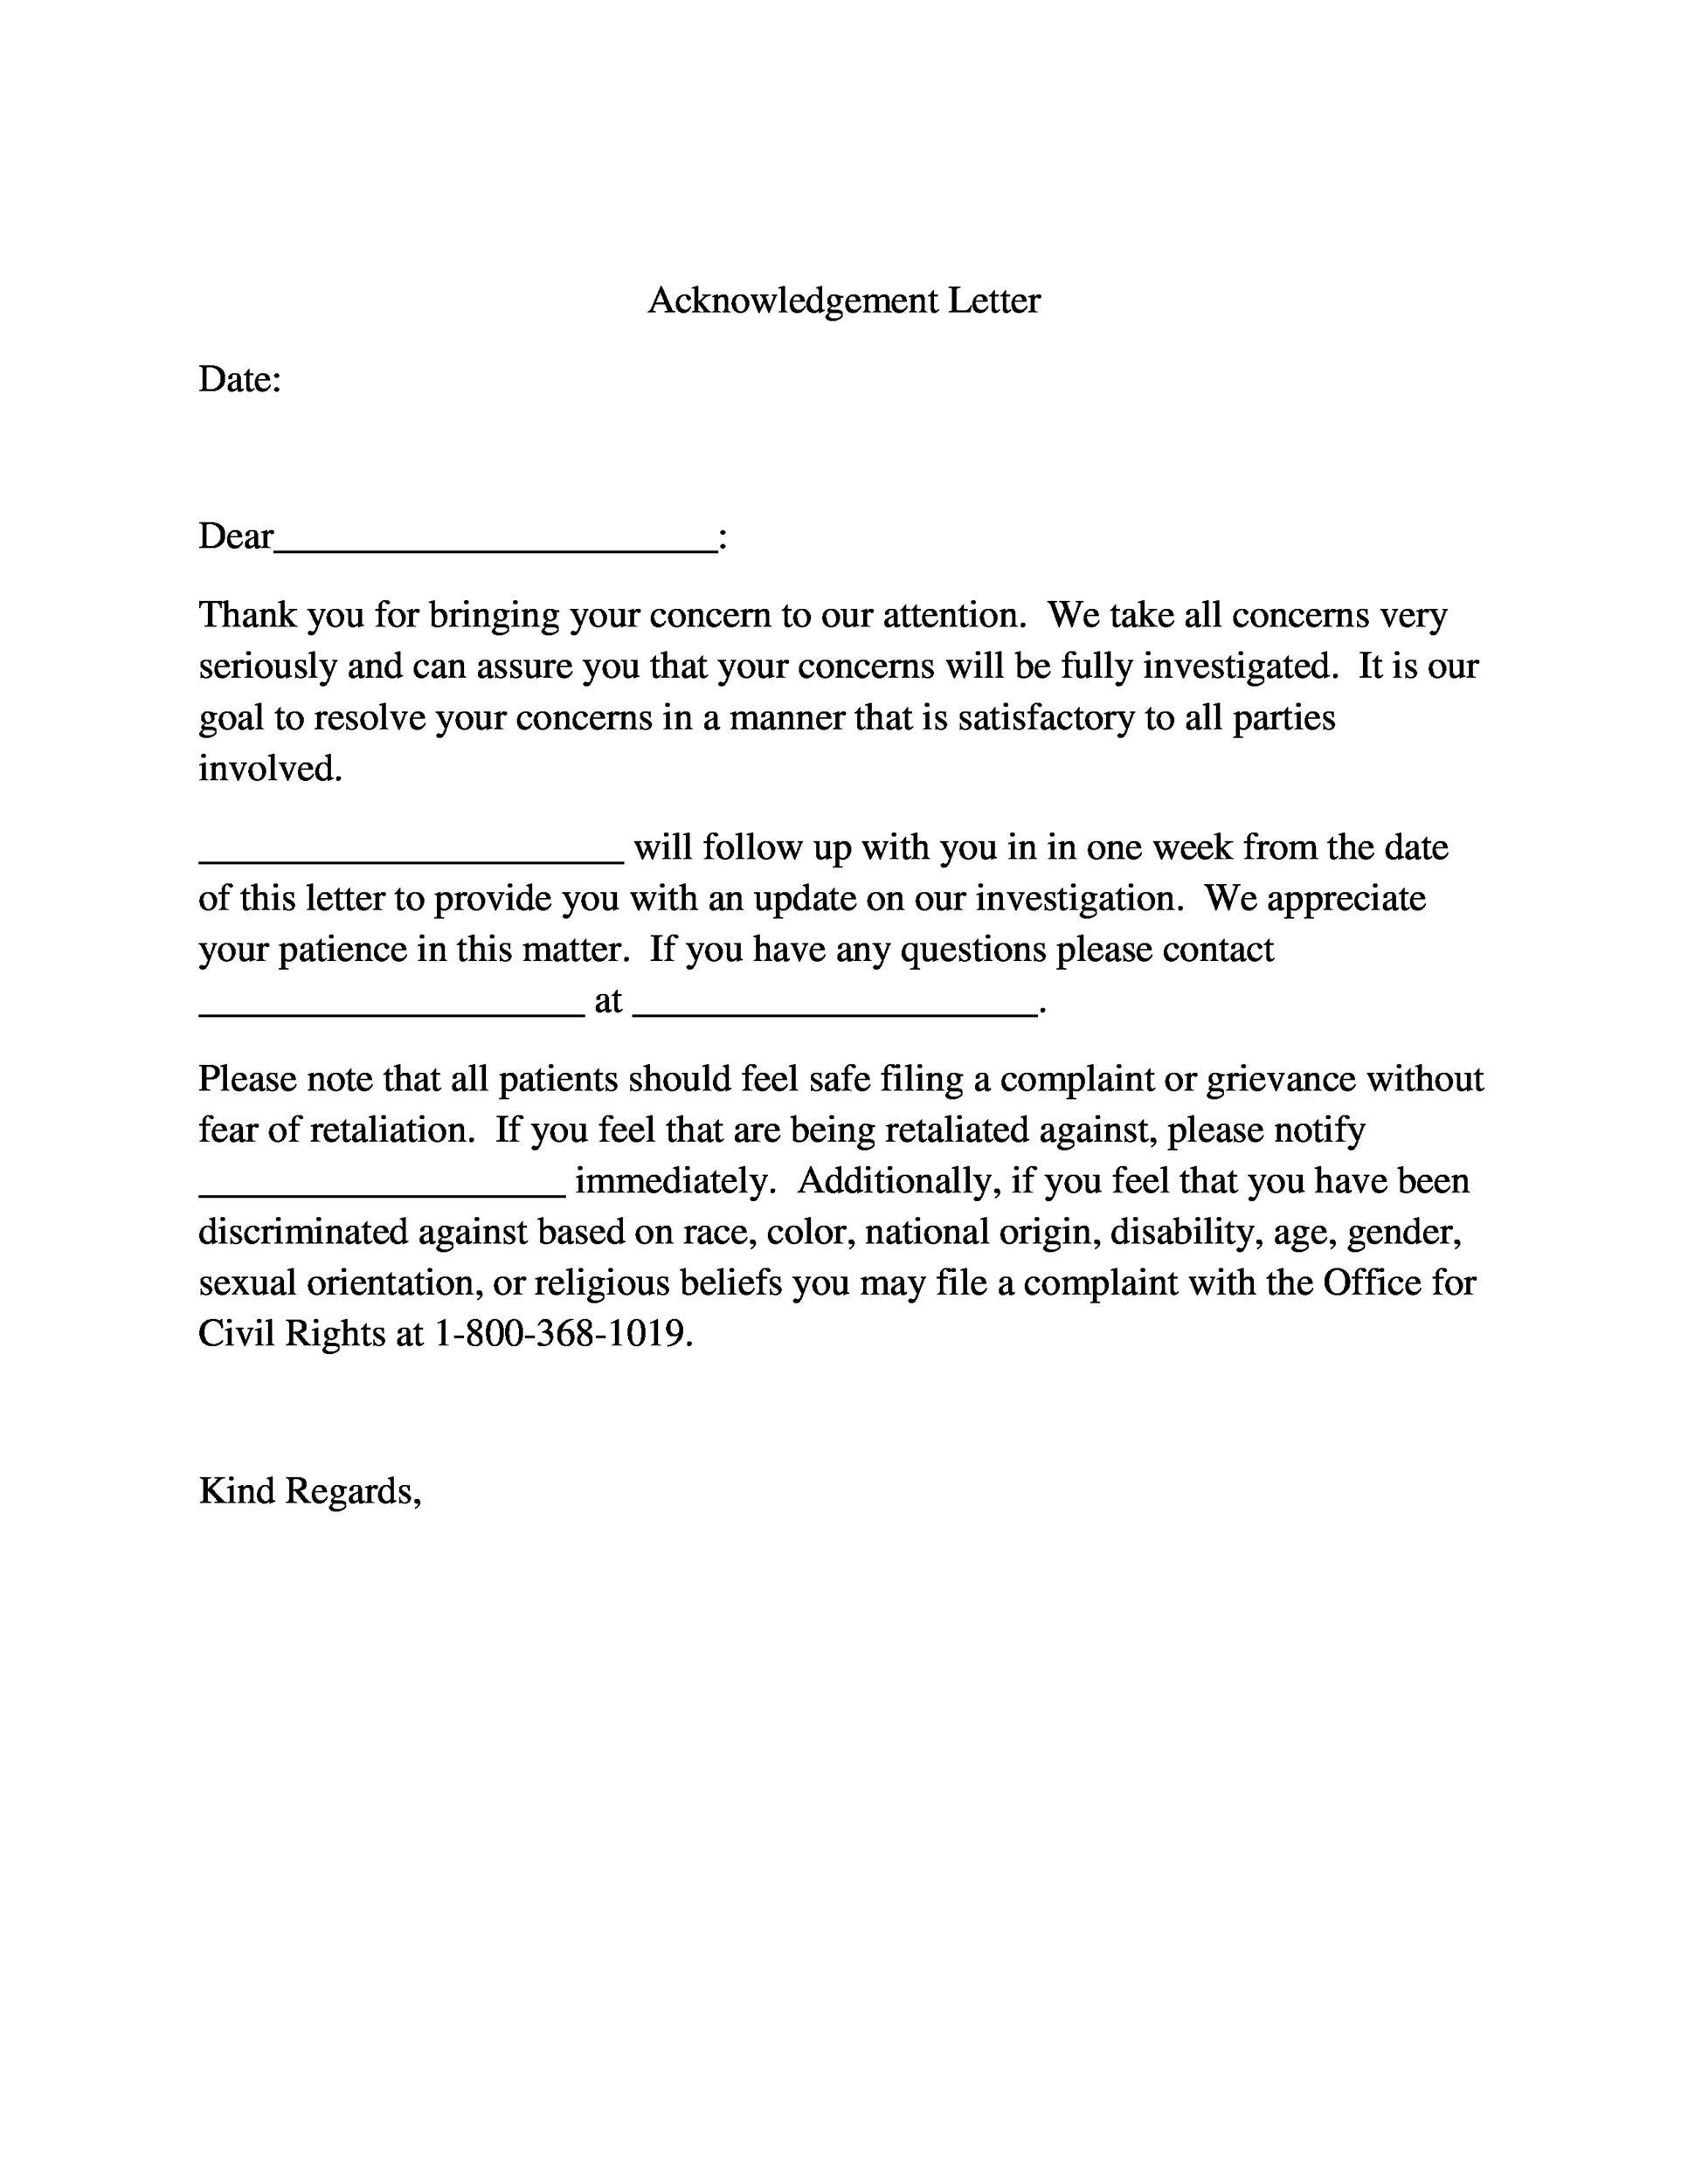 Free acknowledgement sample 17